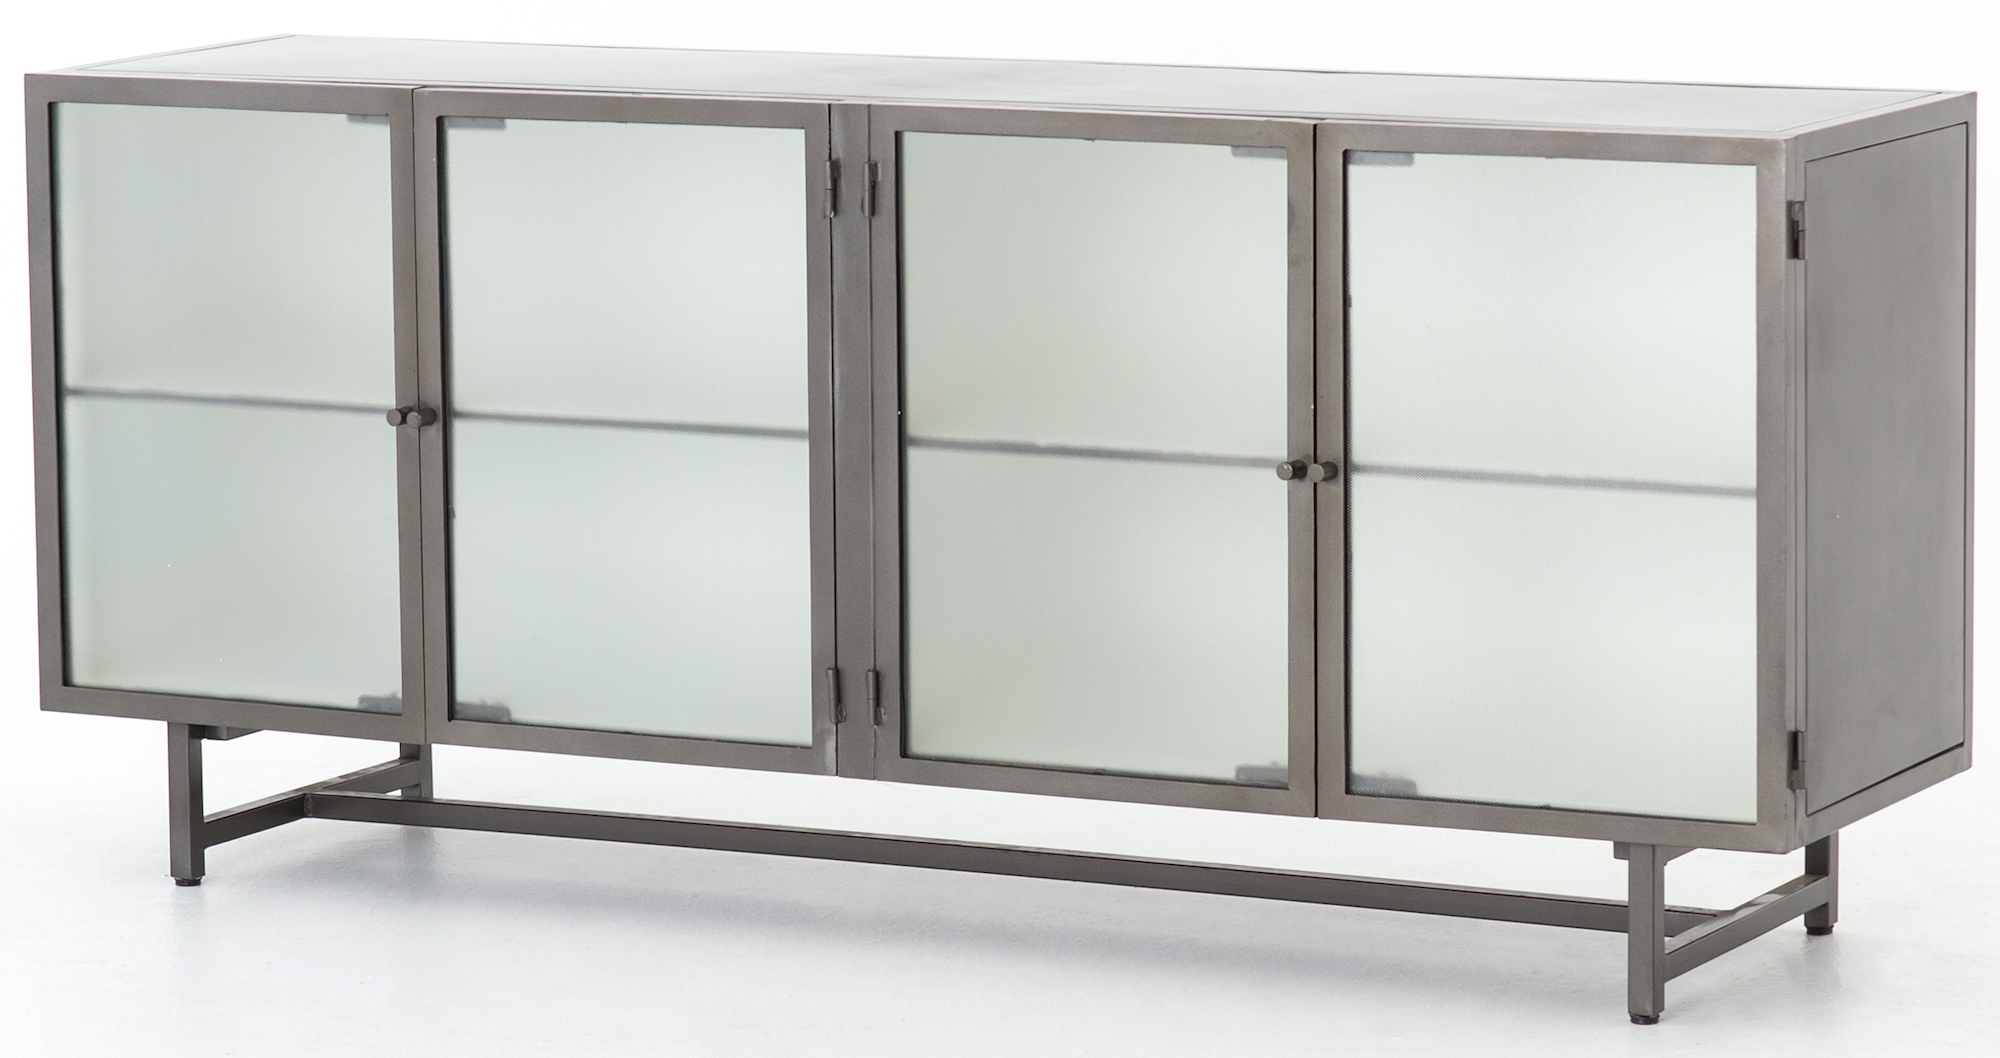 Cabinets, Consoles & Sofa Tables | Htgt Furniture Within Gunmetal Perforated Brass Media Console Tables (View 7 of 30)